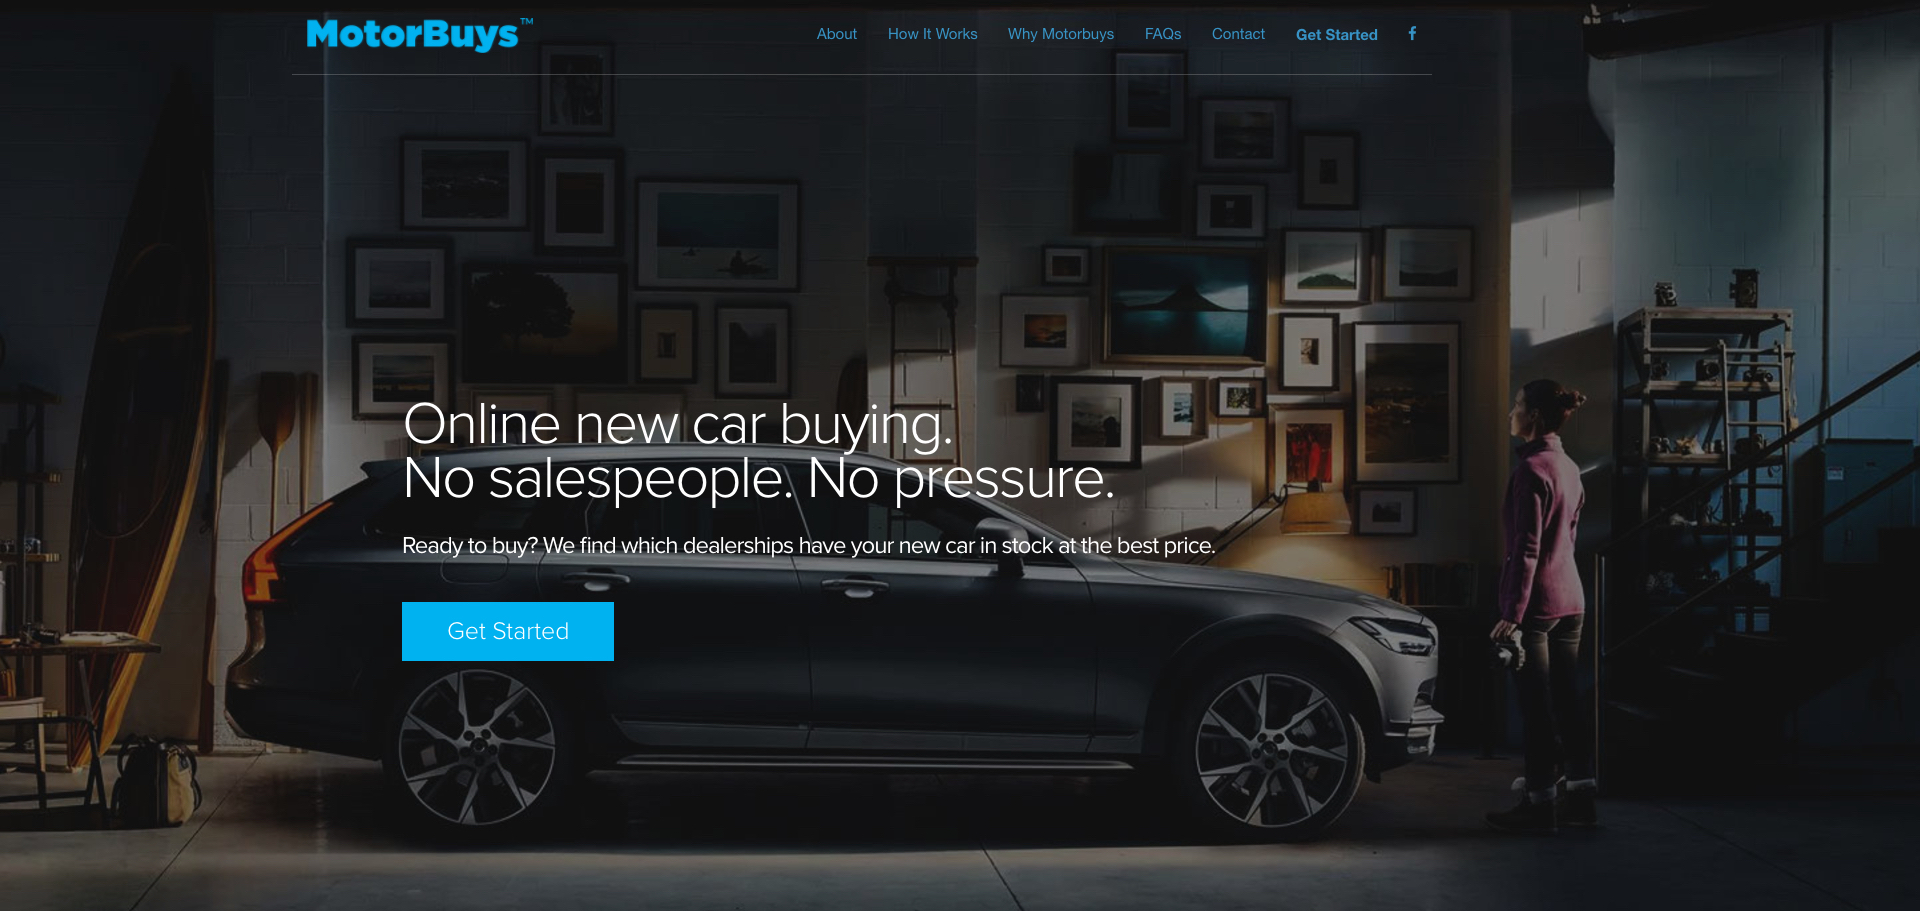 Motorbuys automated online new car buying